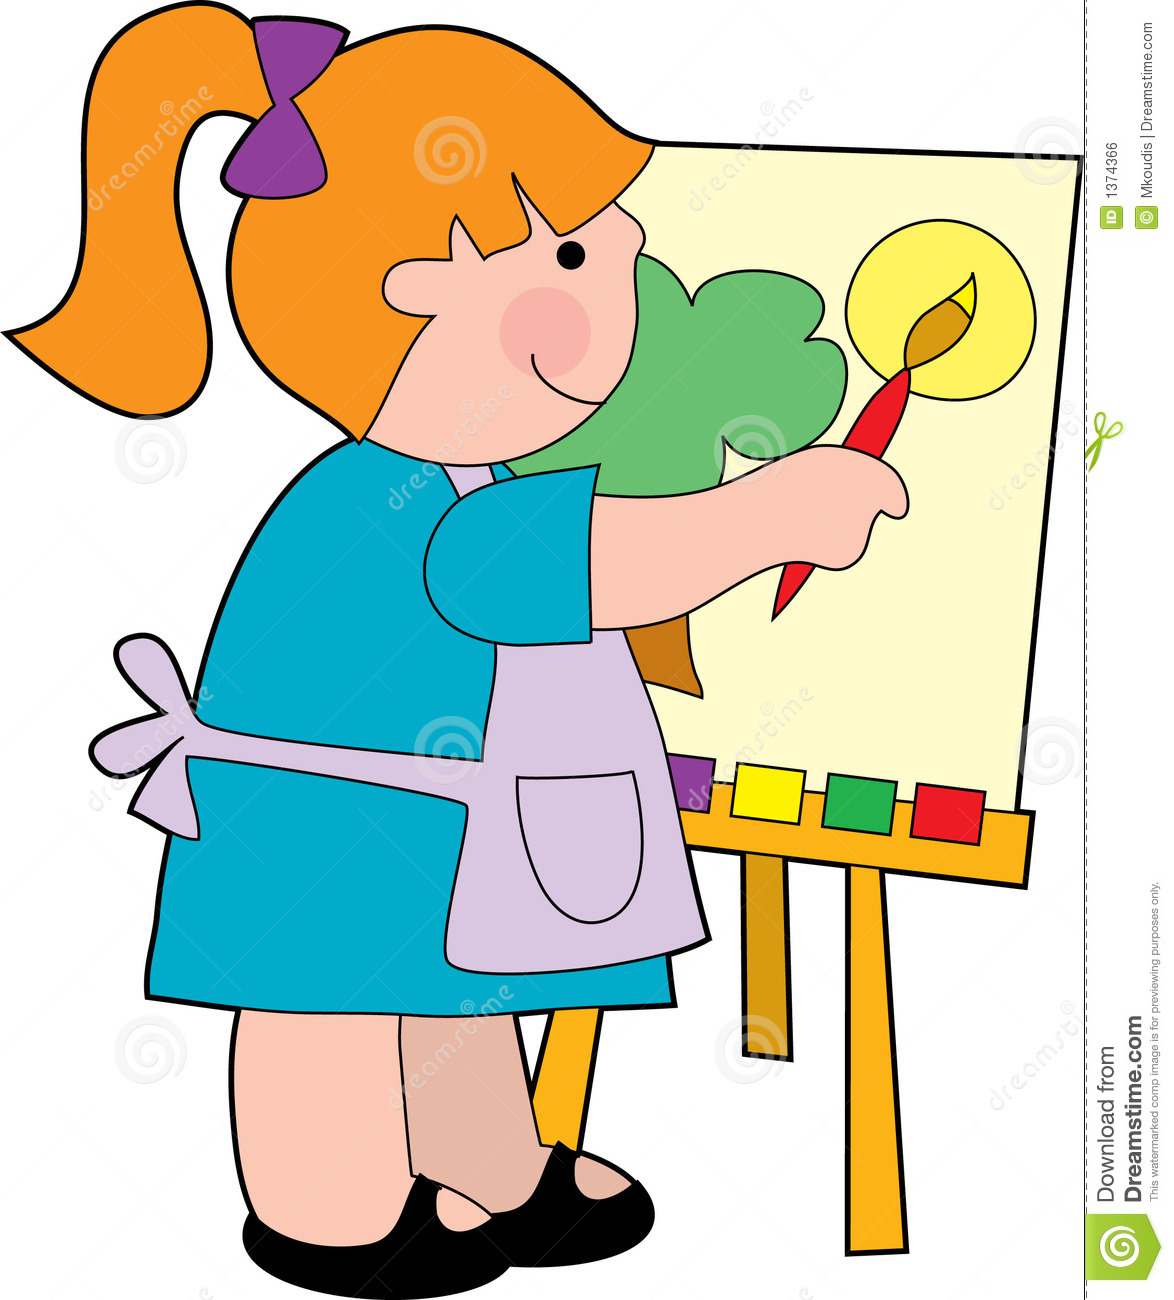 Kids painting clipart 5 » Clipart Station.